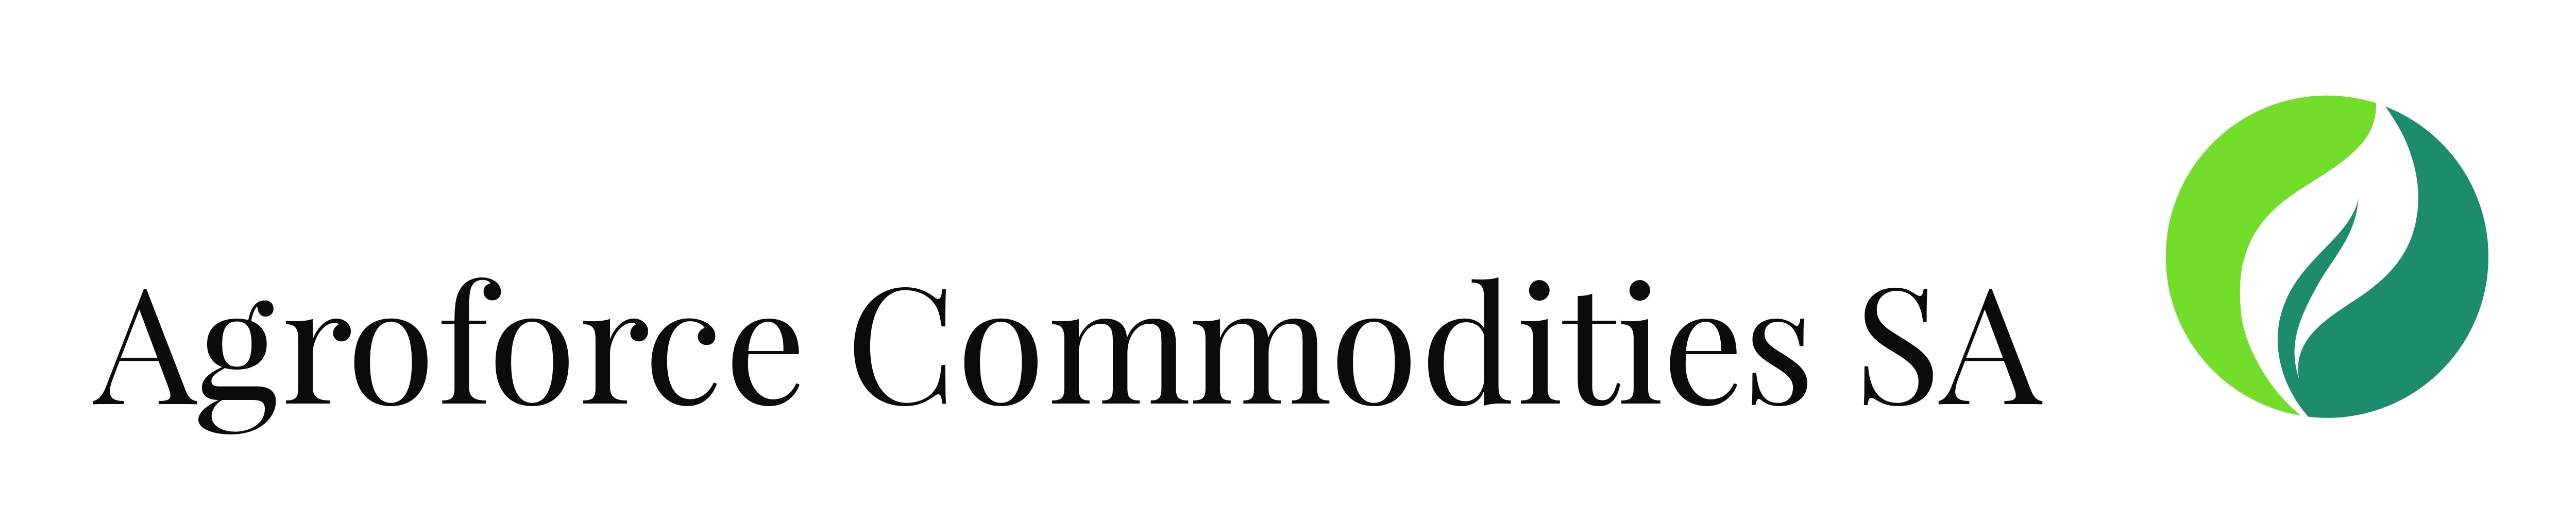 Agroforce Commodities